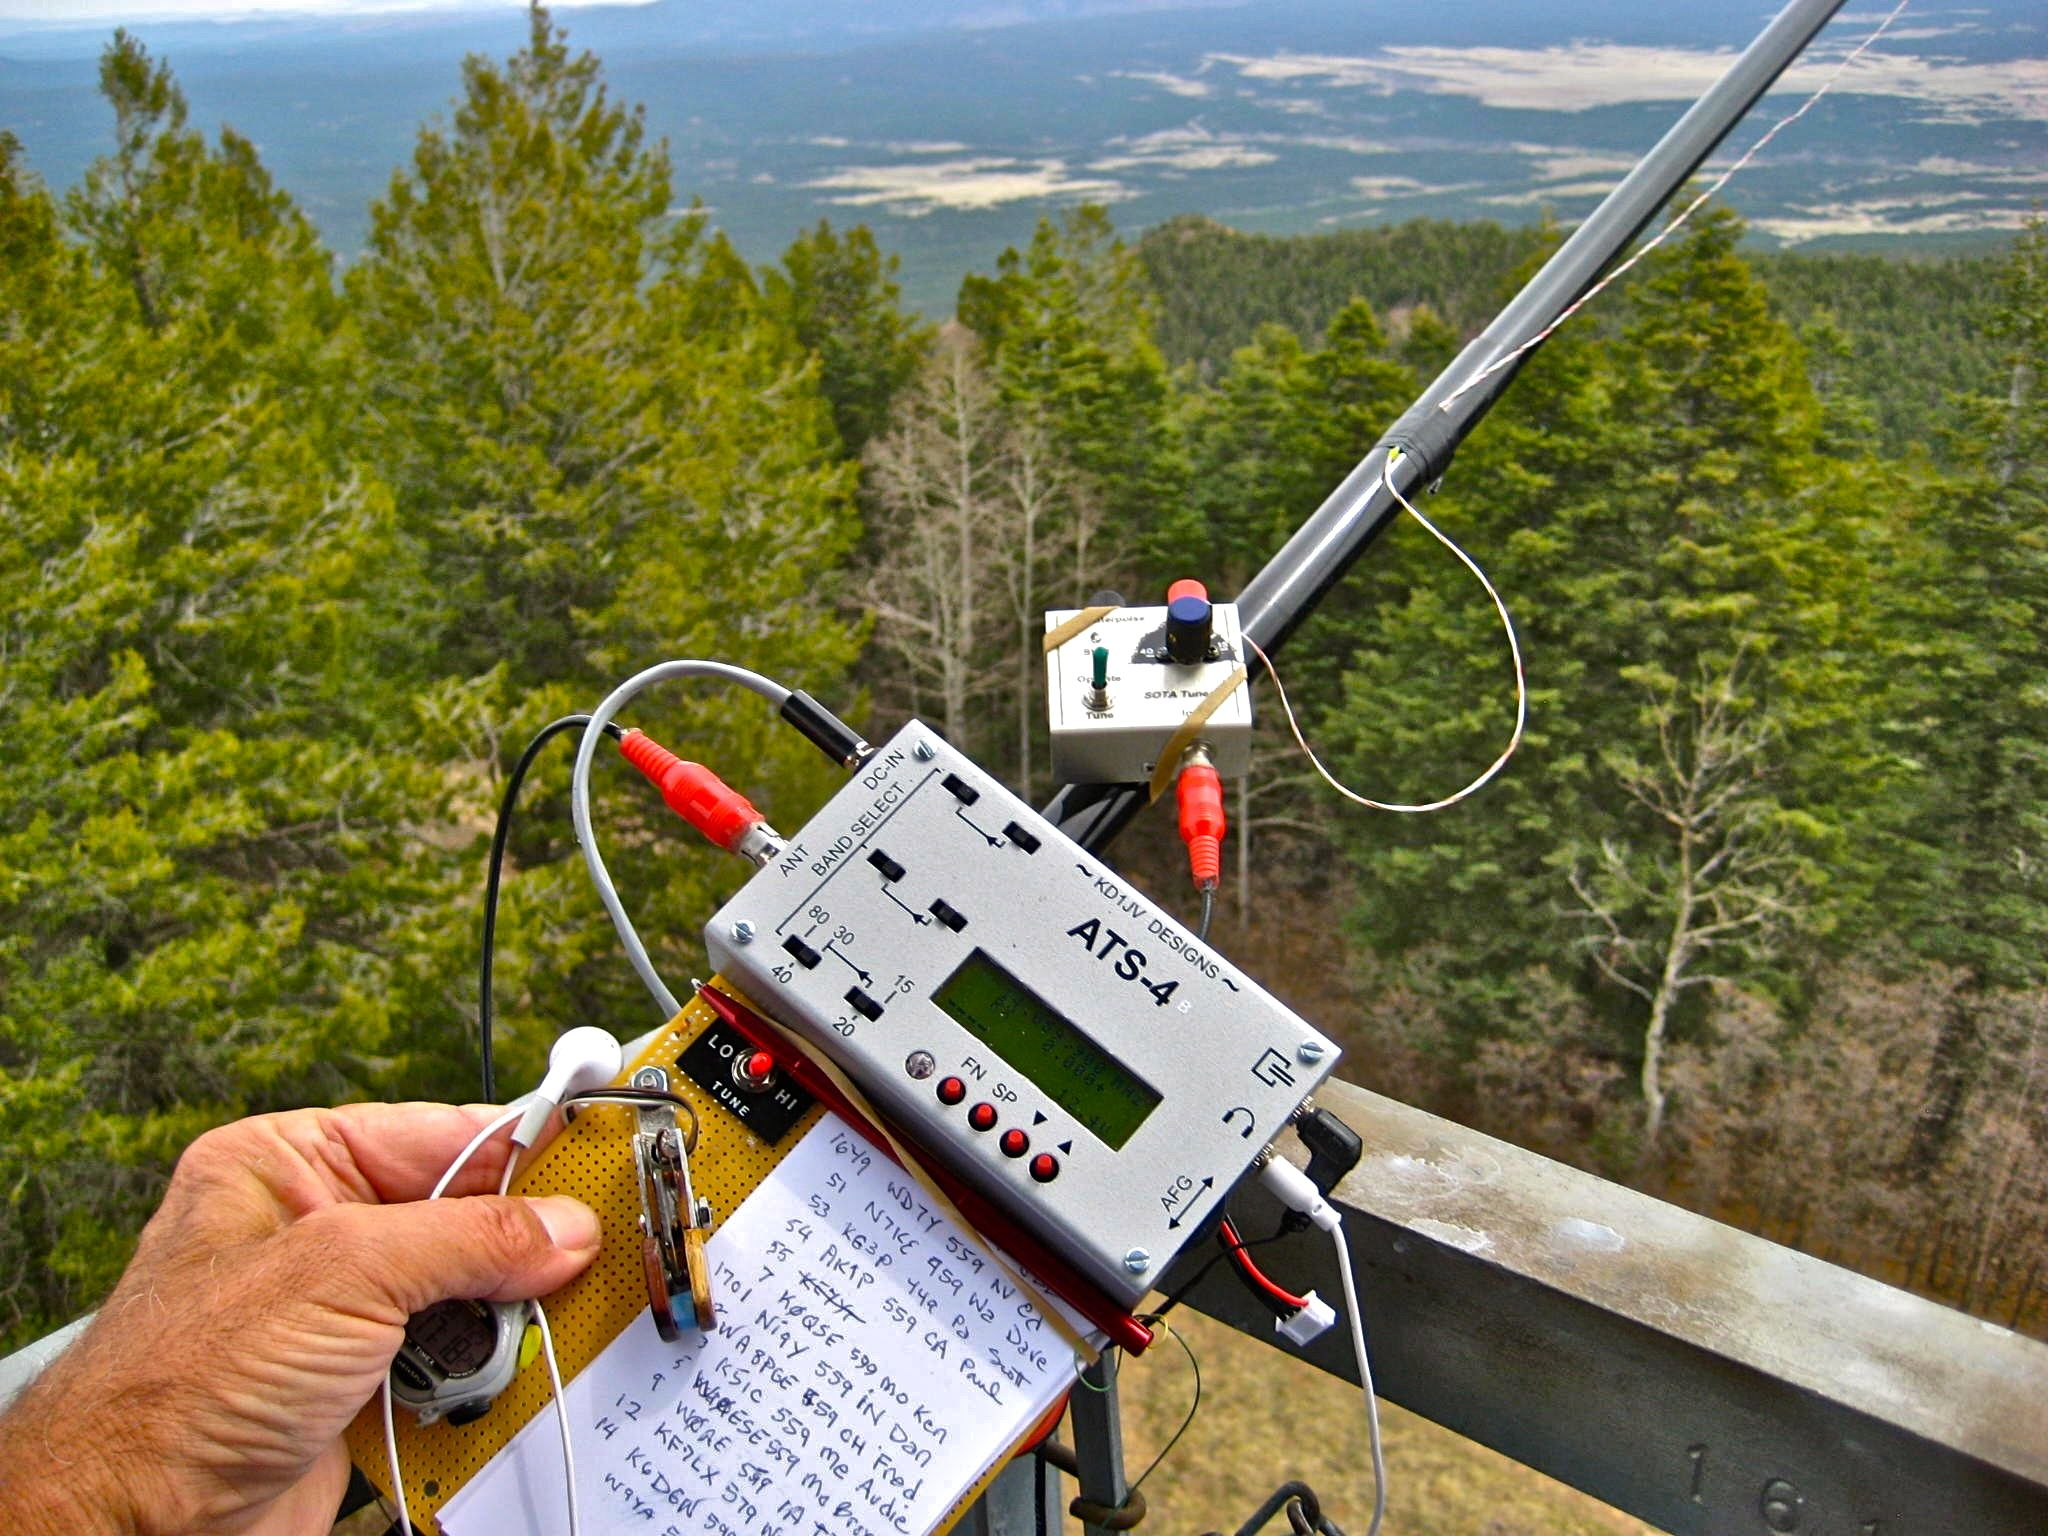 My Friend Fred Kt5xs Sota Station Ats4 And Home Made Paddles With Fm Transmitter Circuit 9 Telephone Stripboard Antenna Efhw Operating From A Fire Tower In Az Qrp Ham Radio Amateur